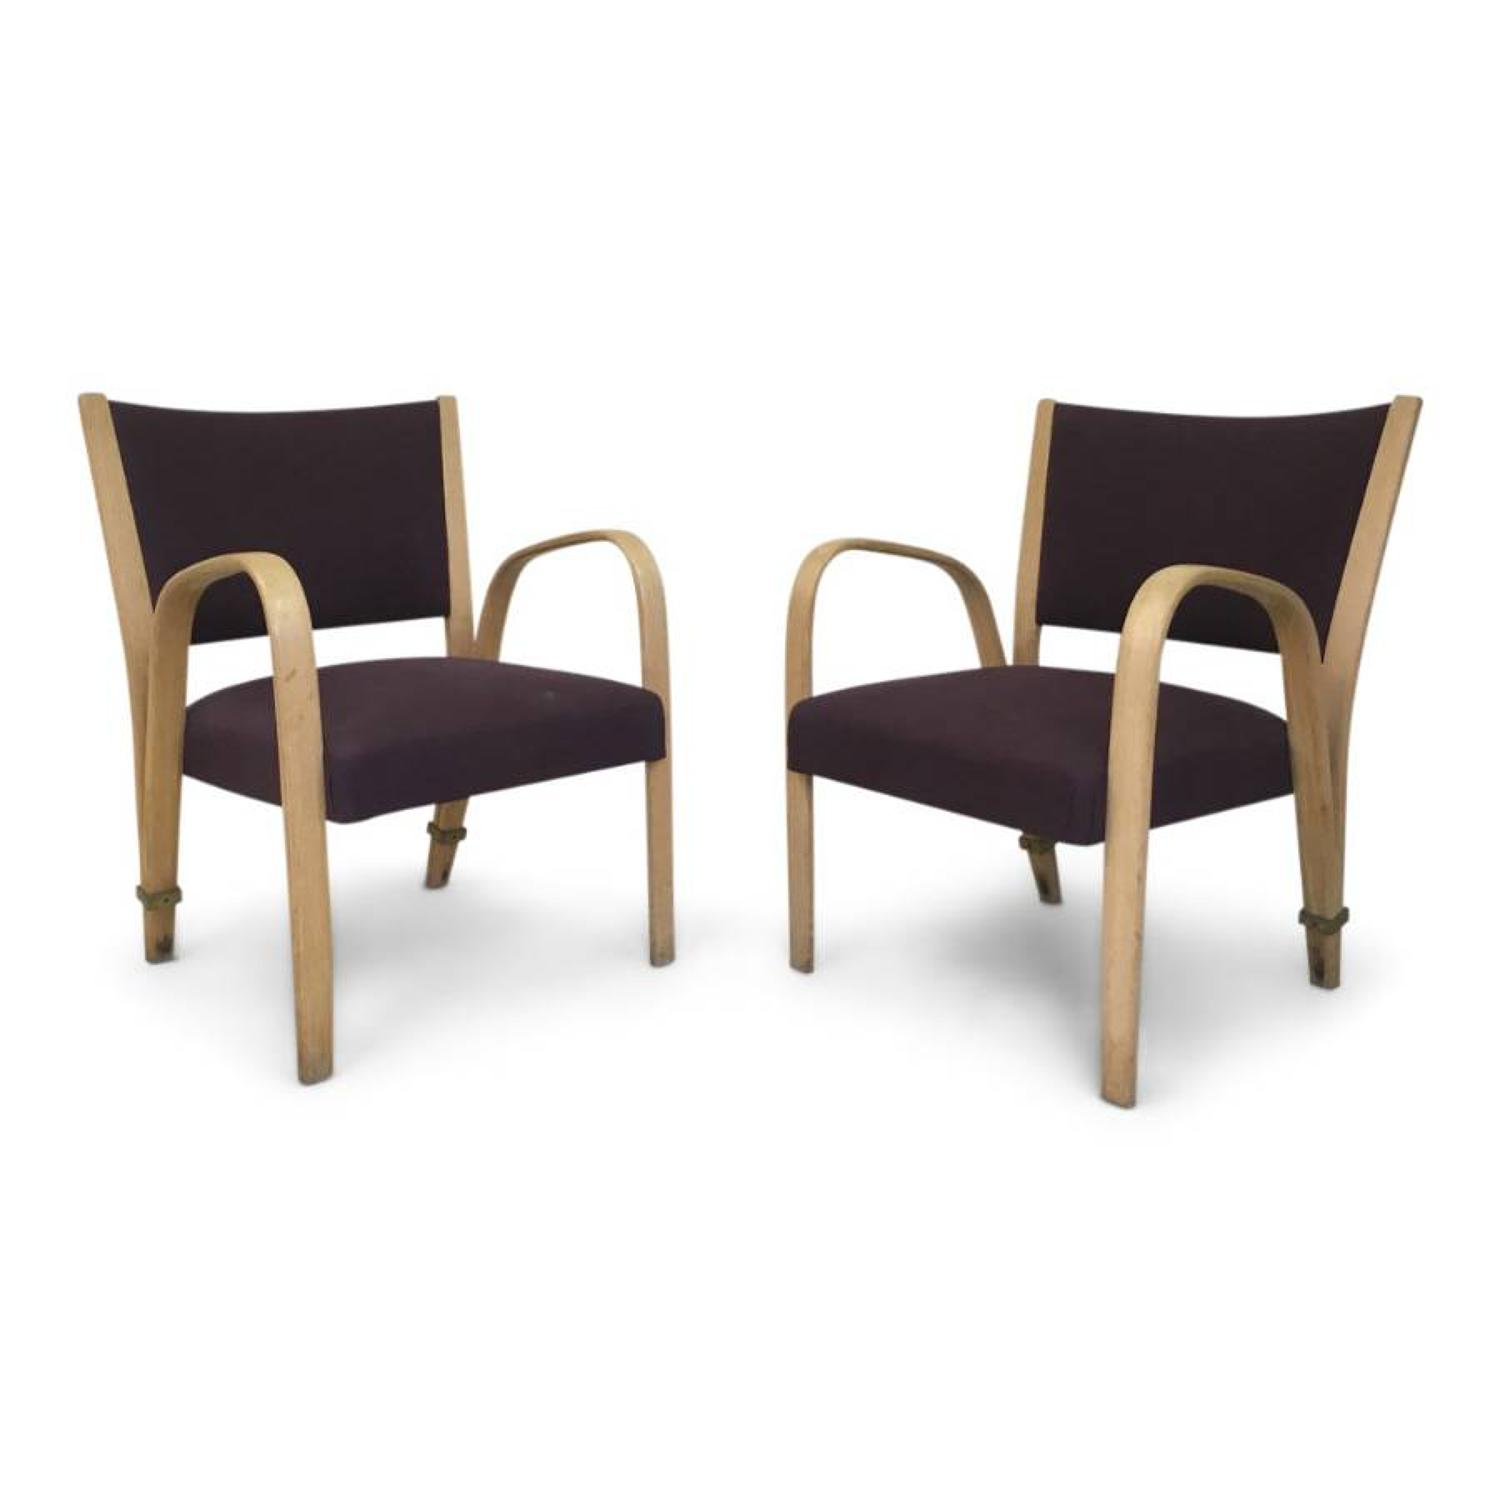 A pair of 1950s Italian bentwood armchairs